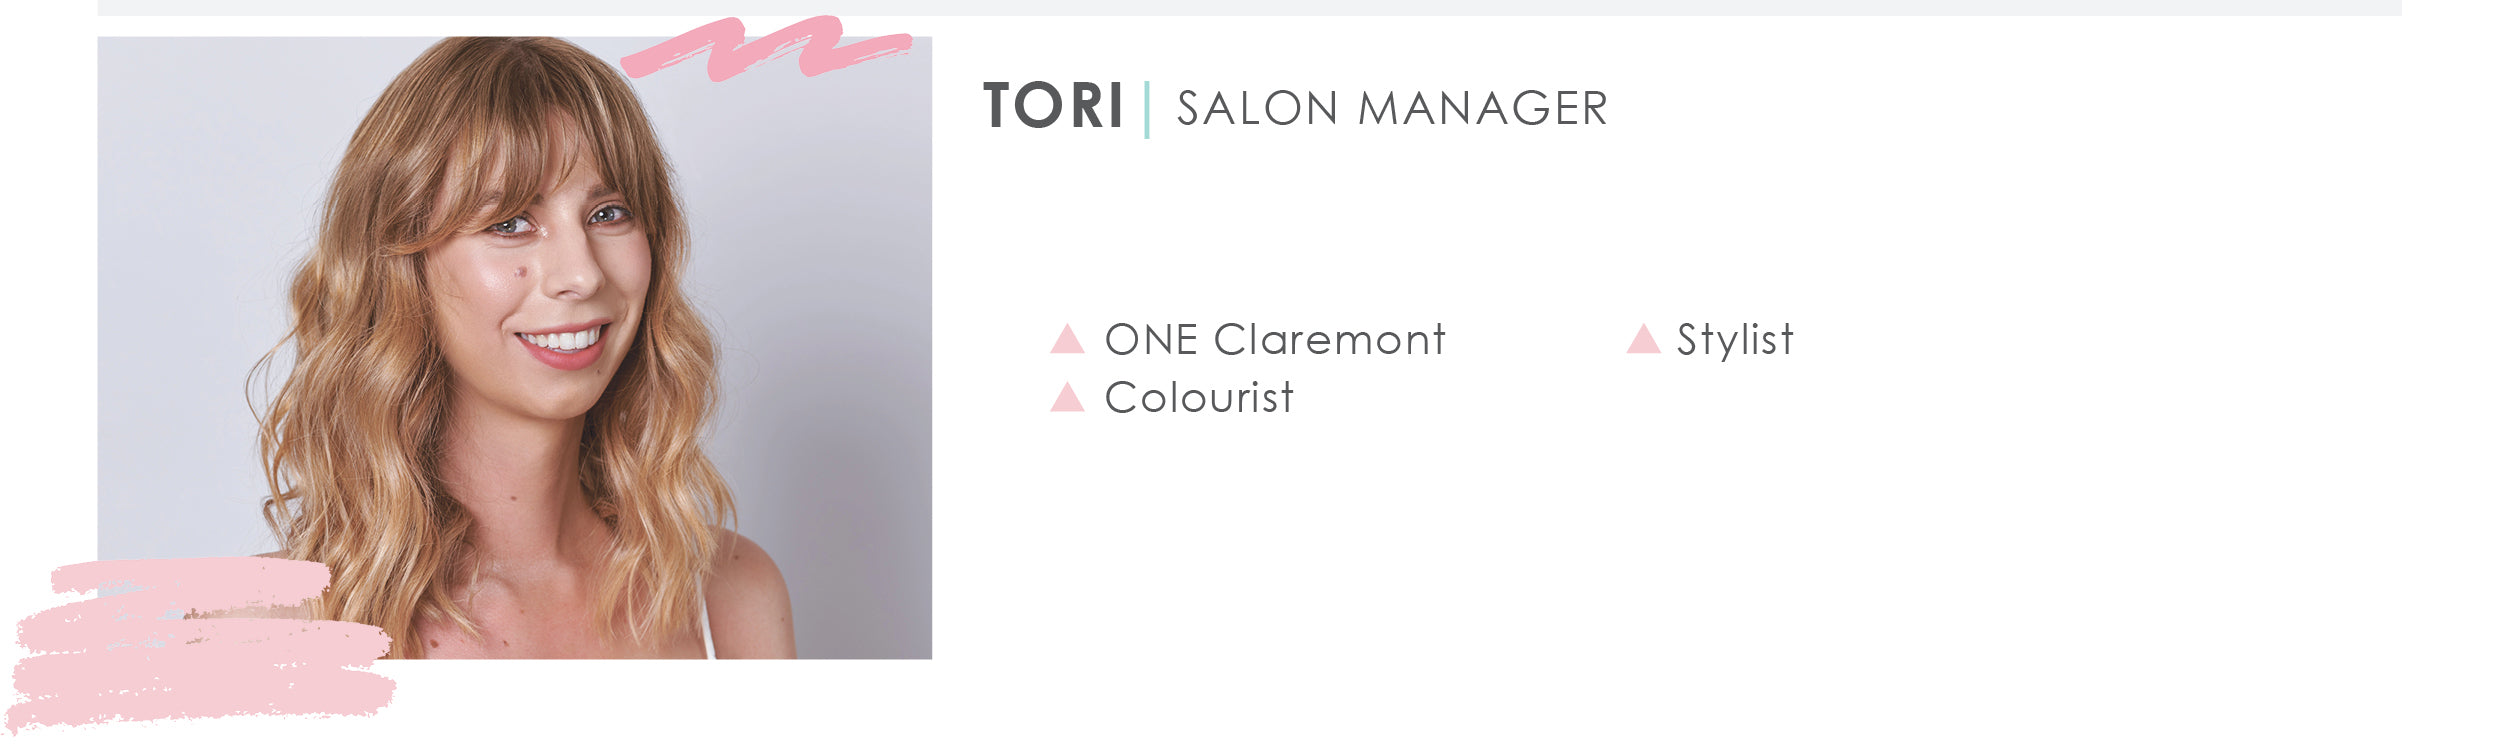 ABOUT Tori ONE Subiaco & ONE Claremont Hair Salon Manager Perth